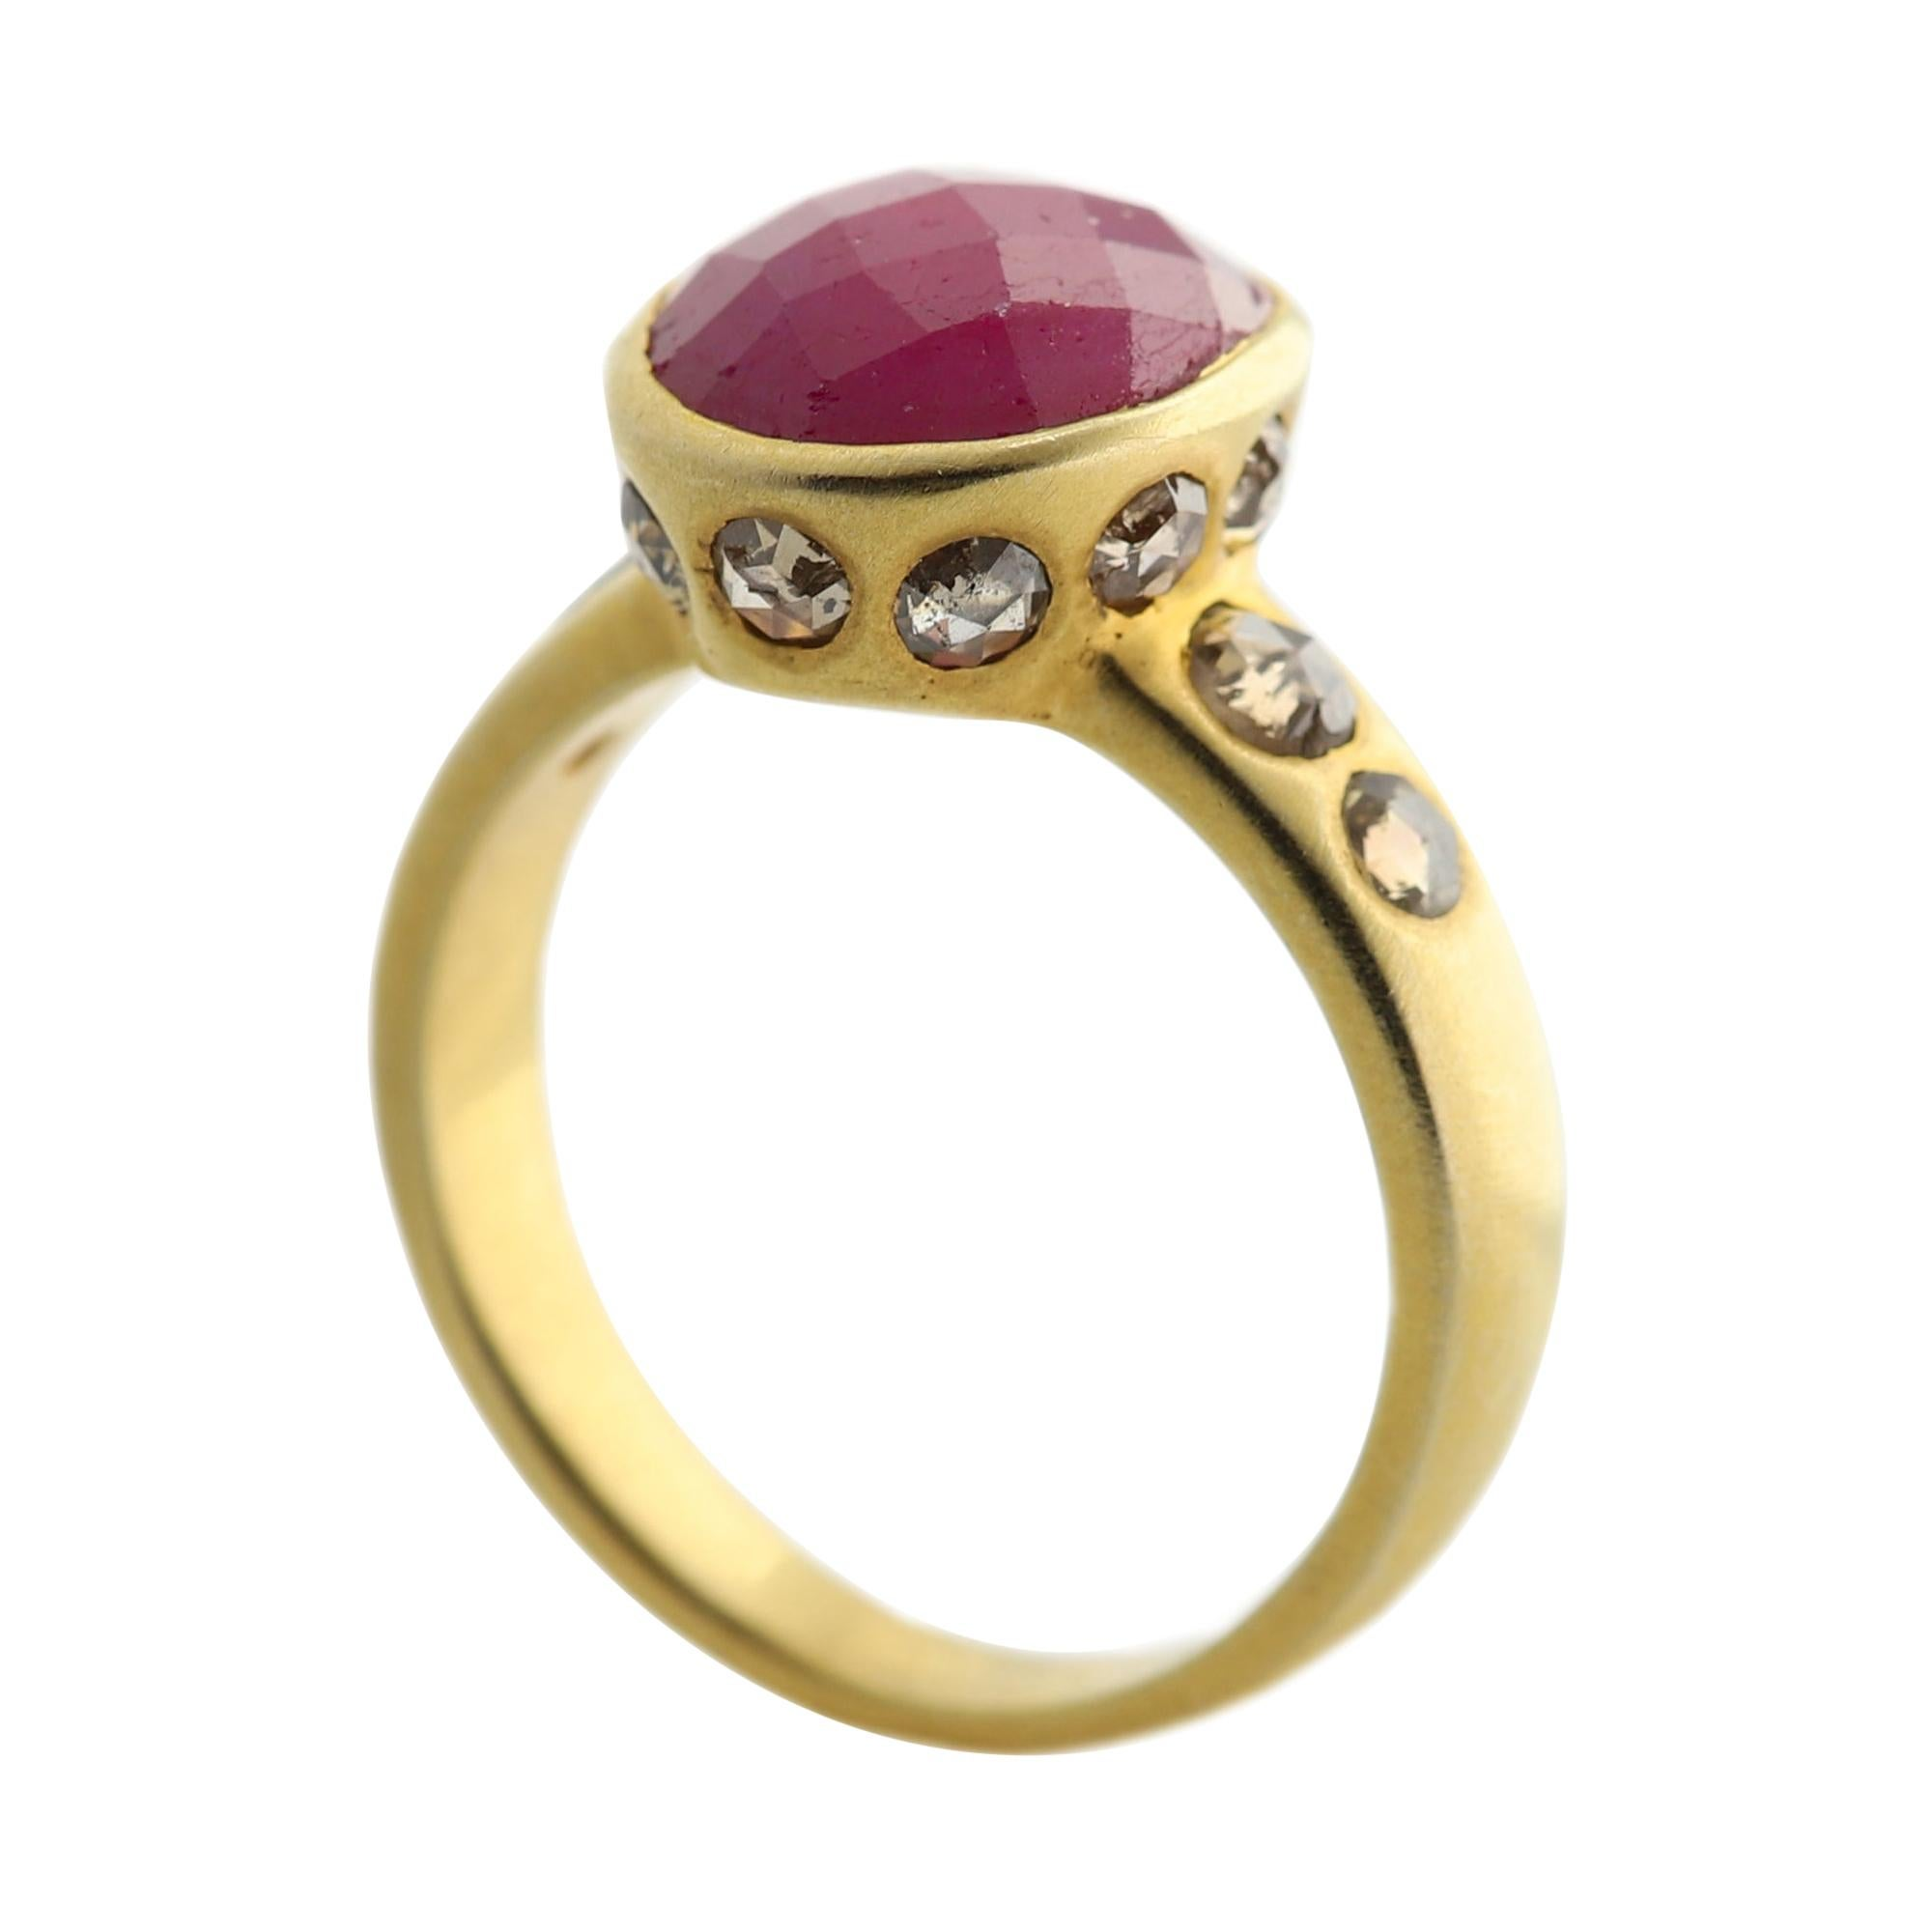 4.0 Ct Ruby Vintage Ring 18k Yellow Gold Oval Ruby & Old Cut Diamonds Ring